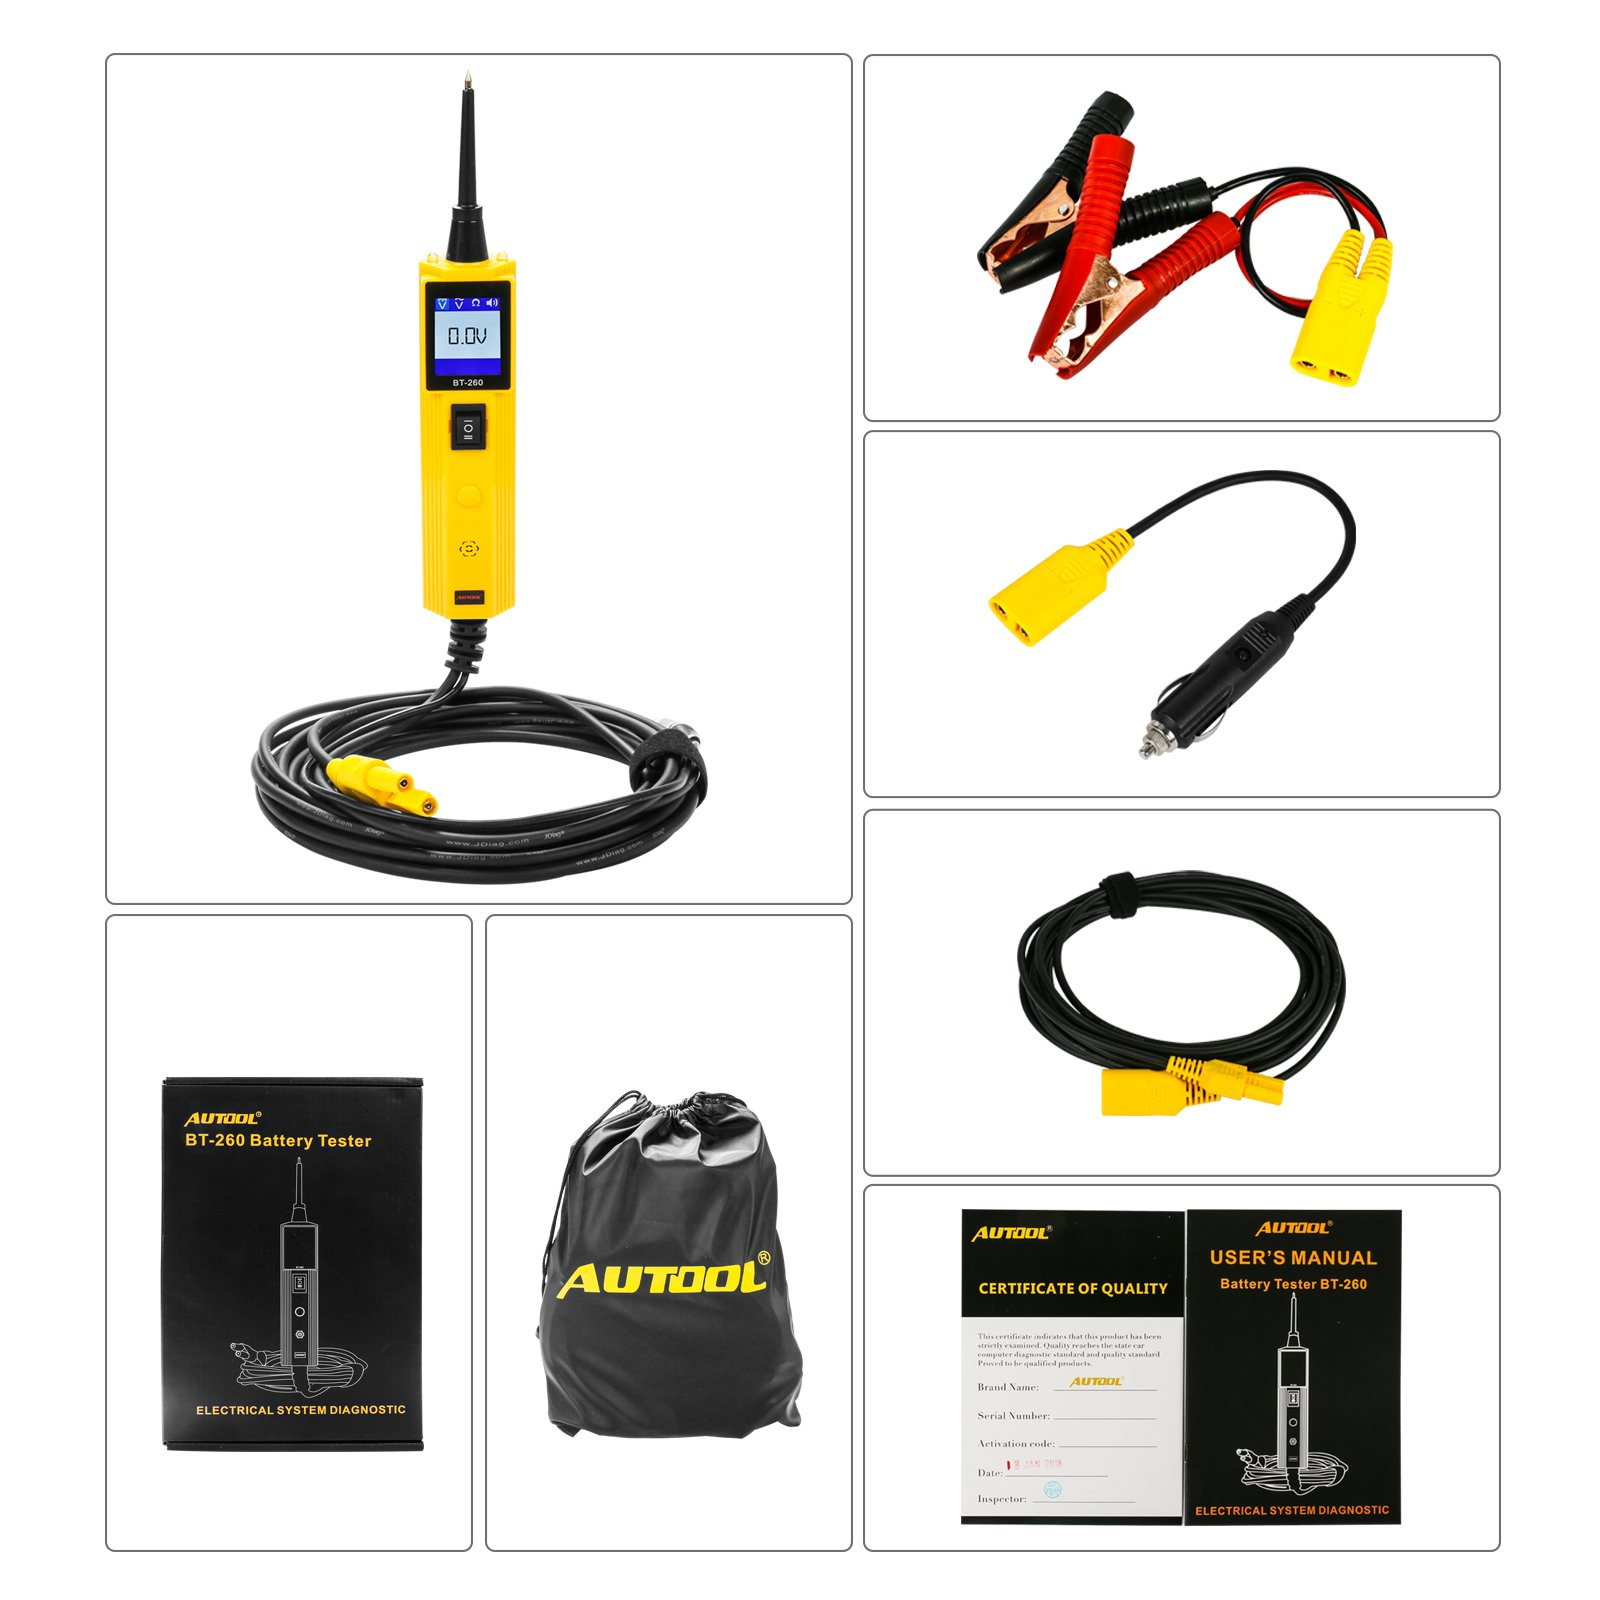 AUTOOL Automative Circuit Tester Power Probe Kit, Car Electrical Diagnostic Tool 12V/24V Circuit System Tester DC/AC Voltage/Polarity Locator with LED Flashlight by AUTOOL (Image #6)